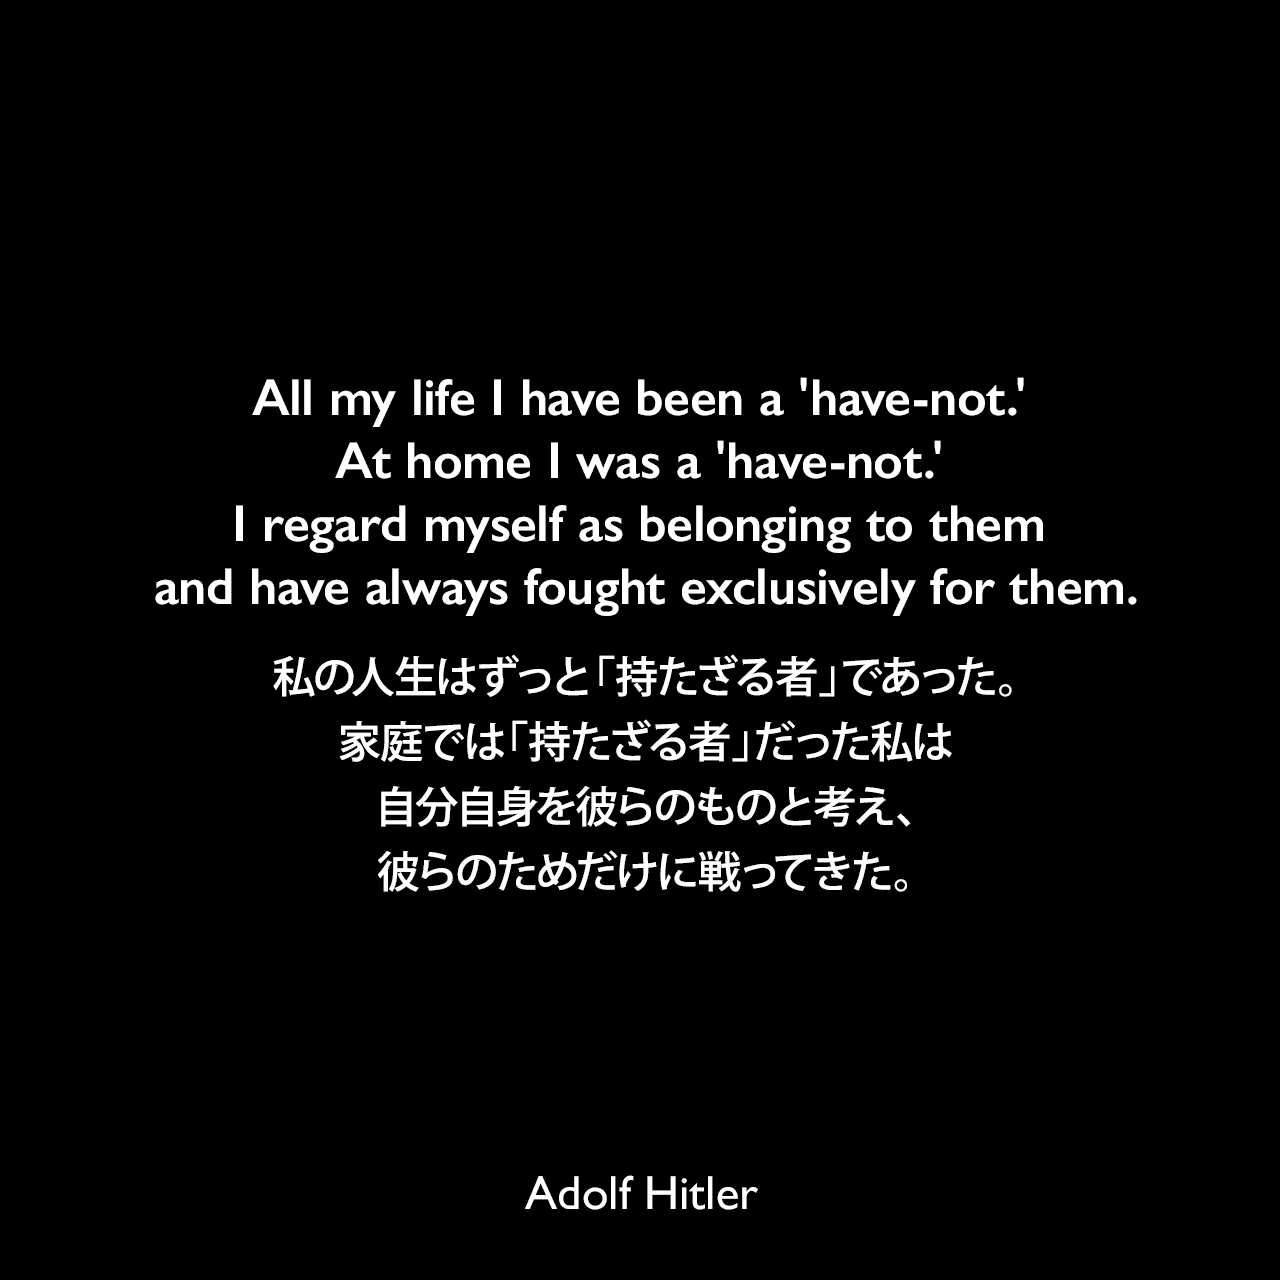 All my life I have been a 'have-not.' At home I was a 'have-not.' I regard myself as belonging to them and have always fought exclusively for them.私の人生はずっと「持たざる者」であった。家庭では「持たざる者」だった私は自分自身を彼らのものと考え、彼らのためだけに戦ってきた。- 1940年12月10日ベルリンの労働者へのスピーチよりAdolf Hitler